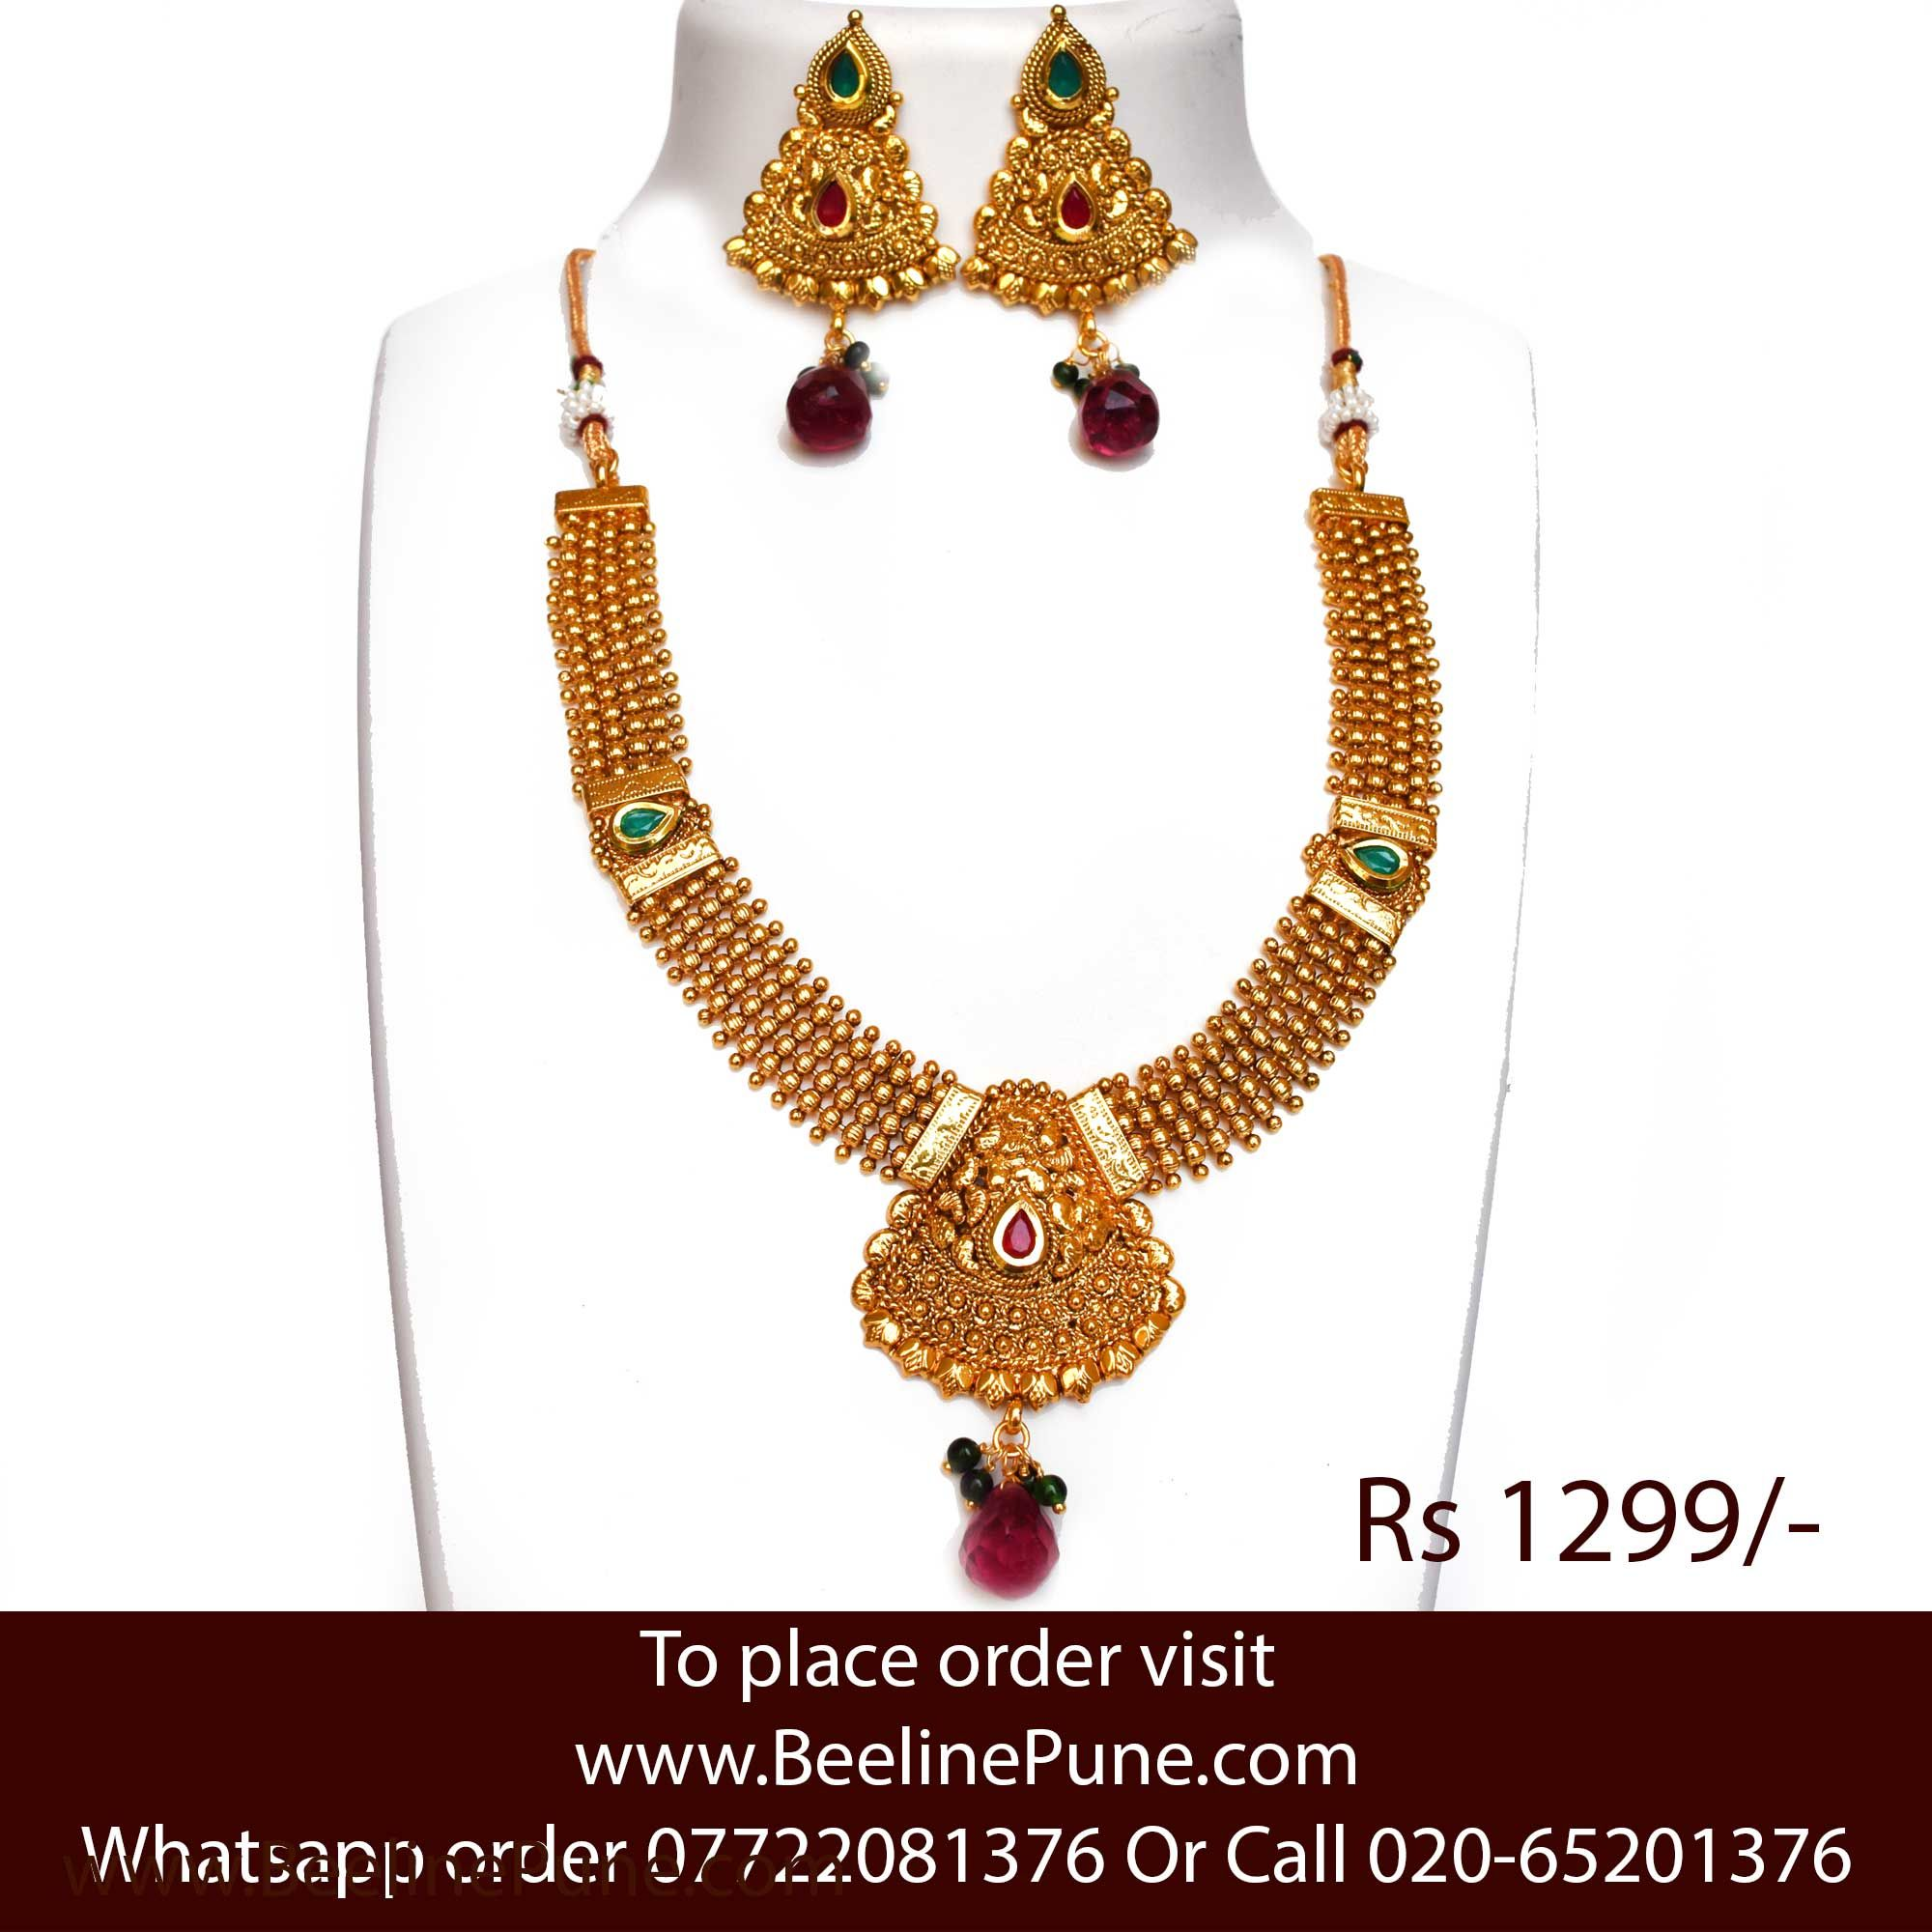 fashion cheap at out indian com wide india design and weddings jewelry artificial of a online for check necklaces sdjewelz range costume jewellery